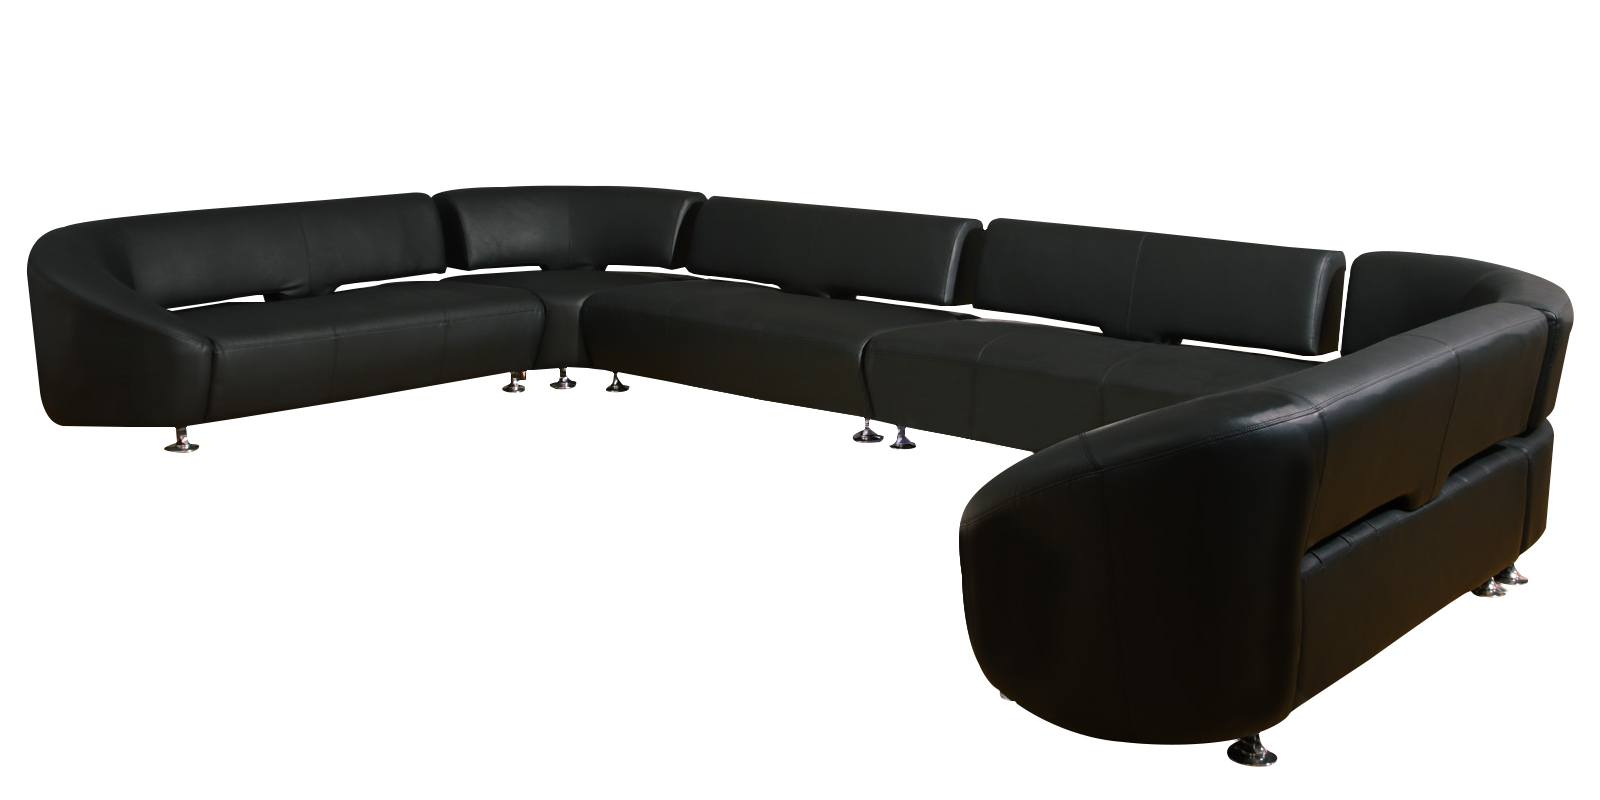 Gwendolyn Luxurious C Shape Sofa In Black Lethearette | Dreamzz Pertaining To Gwen Sofa Chairs (View 22 of 25)